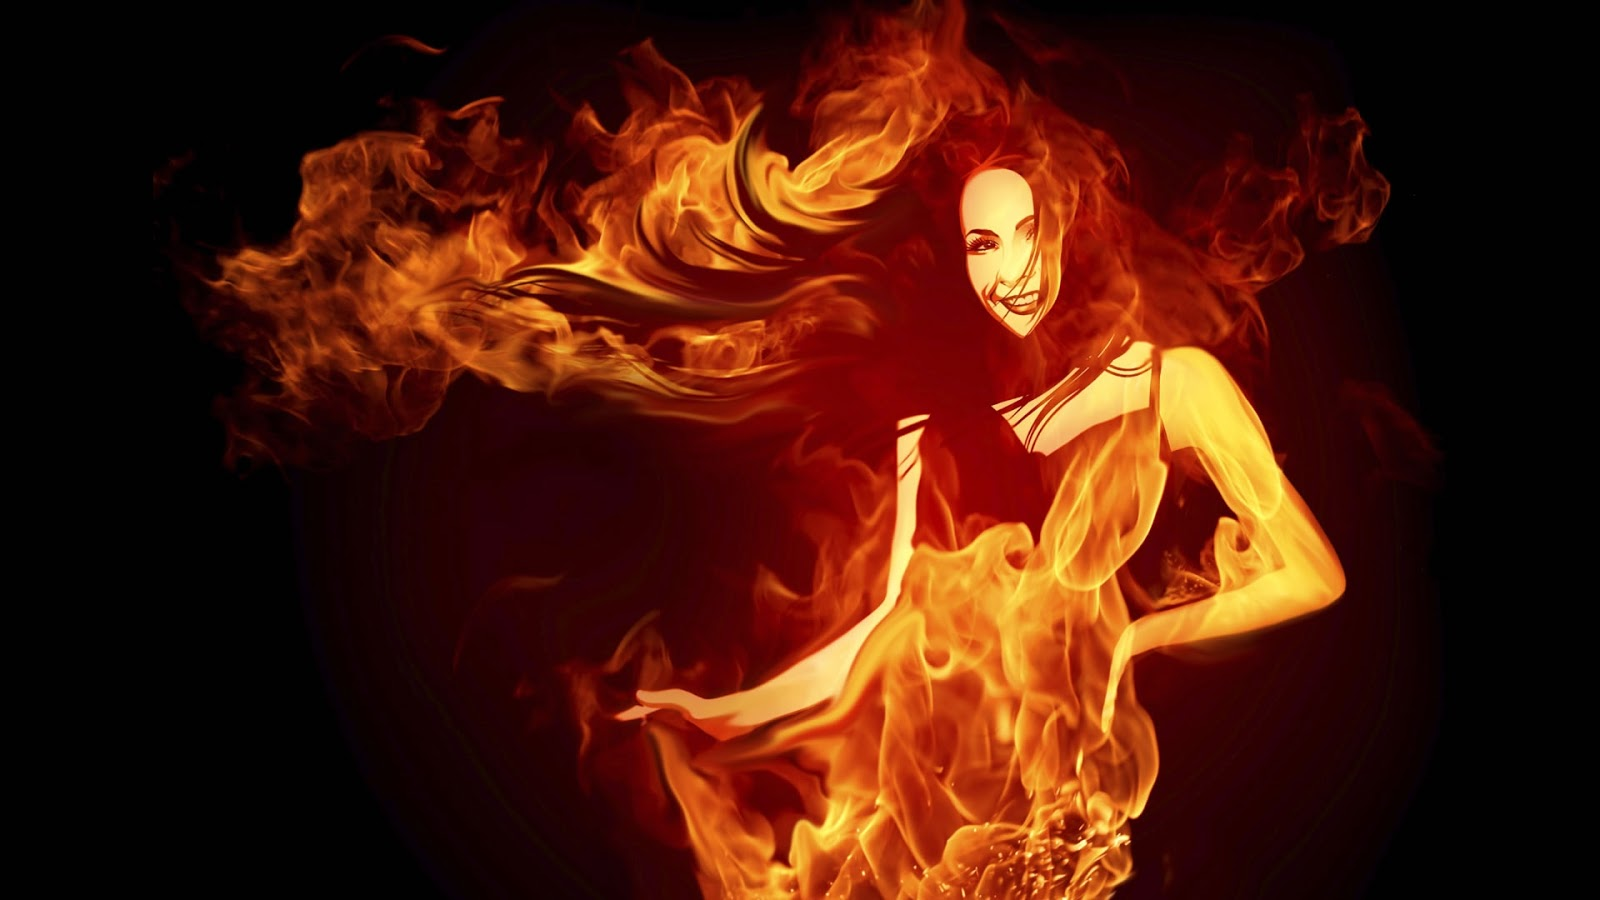 http://2.bp.blogspot.com/-rRb34nfMdYQ/UVpd7dxuFFI/AAAAAAAAAGQ/Ew4-O7dEfF0/s1600/HD+wallpaper+woman-in-fire-1920x1080.jpg